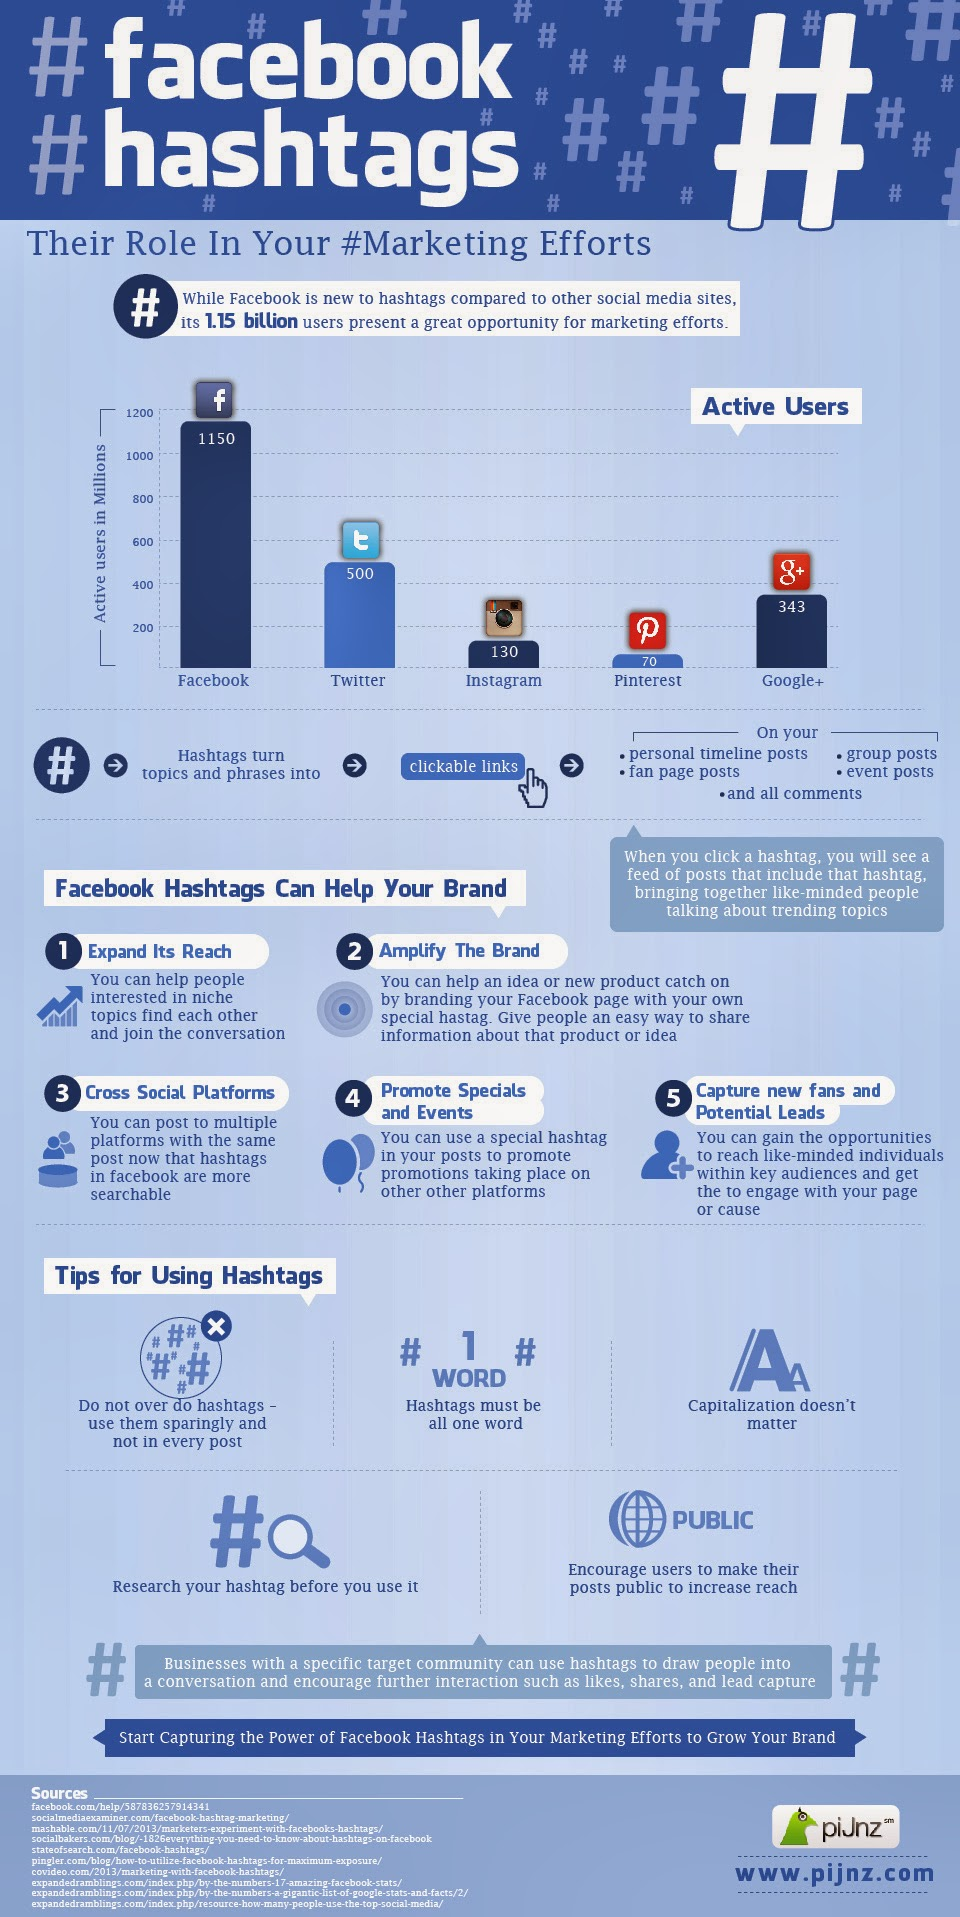 How Facebook Hastags Can Help Your Brand [infographic], hastag for businesses